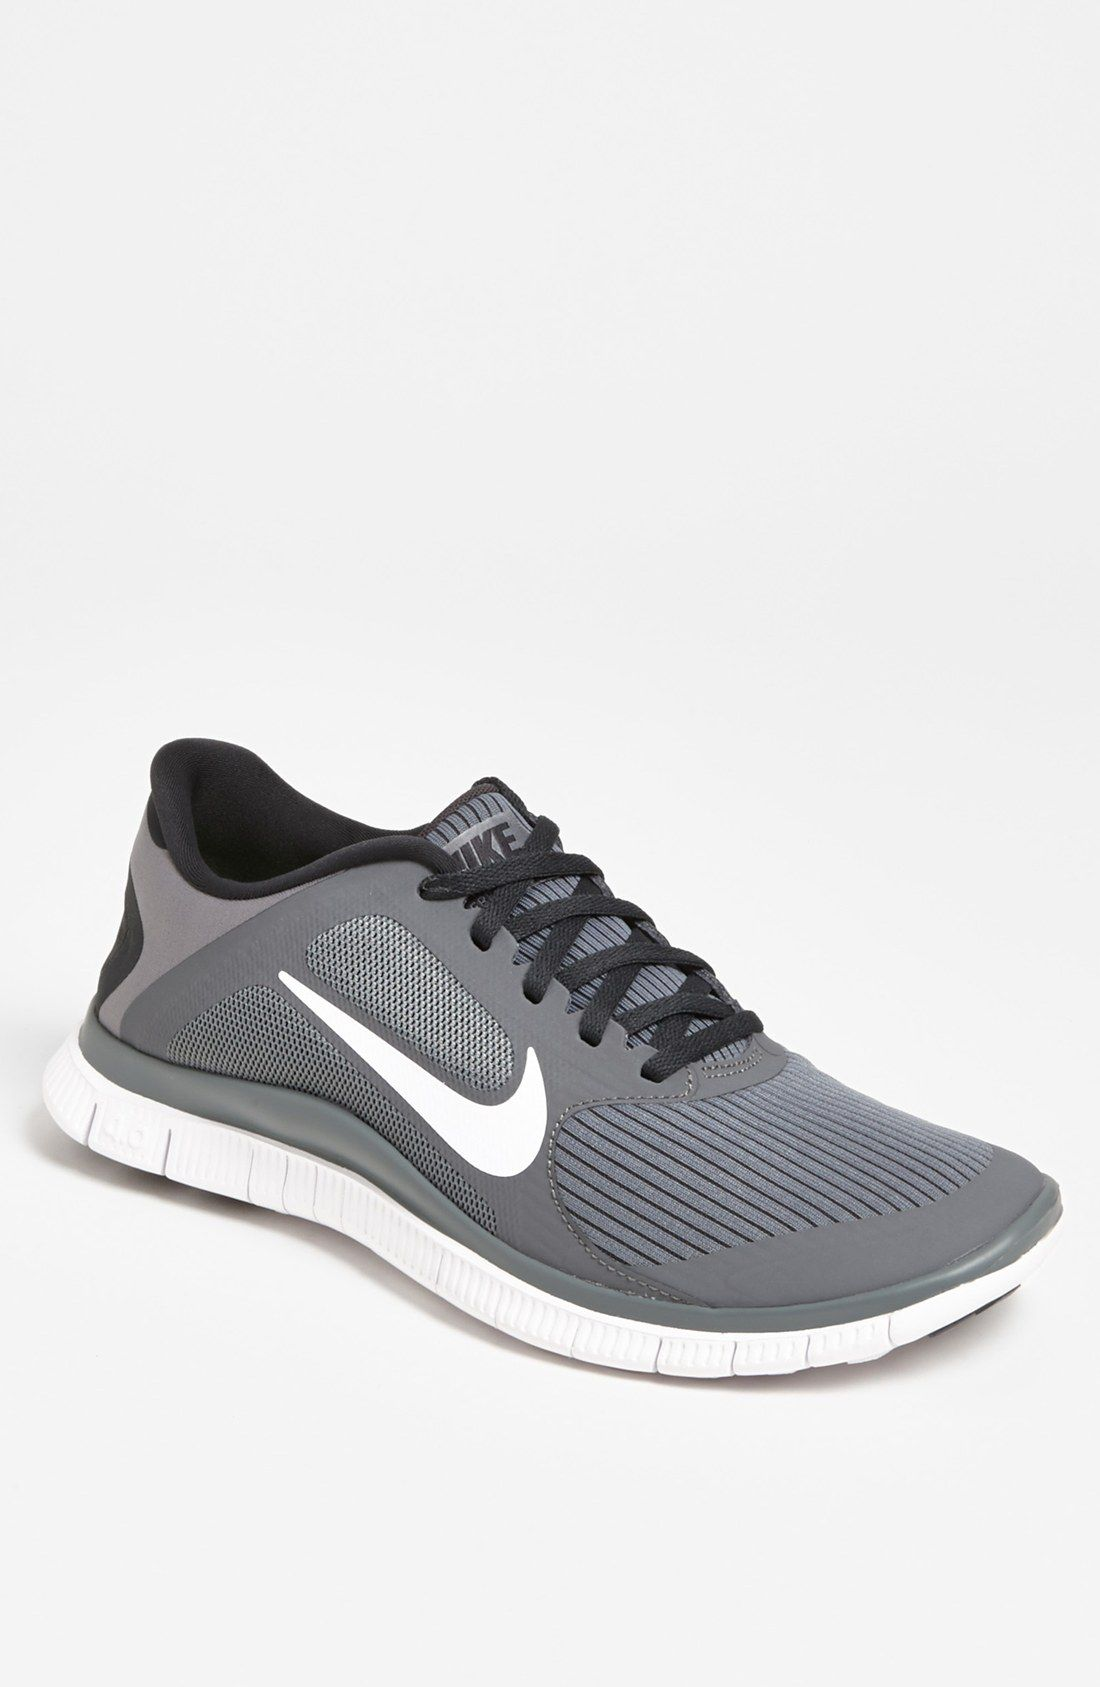 nikes,tiffany free runs womens,cheap nike free running shoes,discount nike  air…